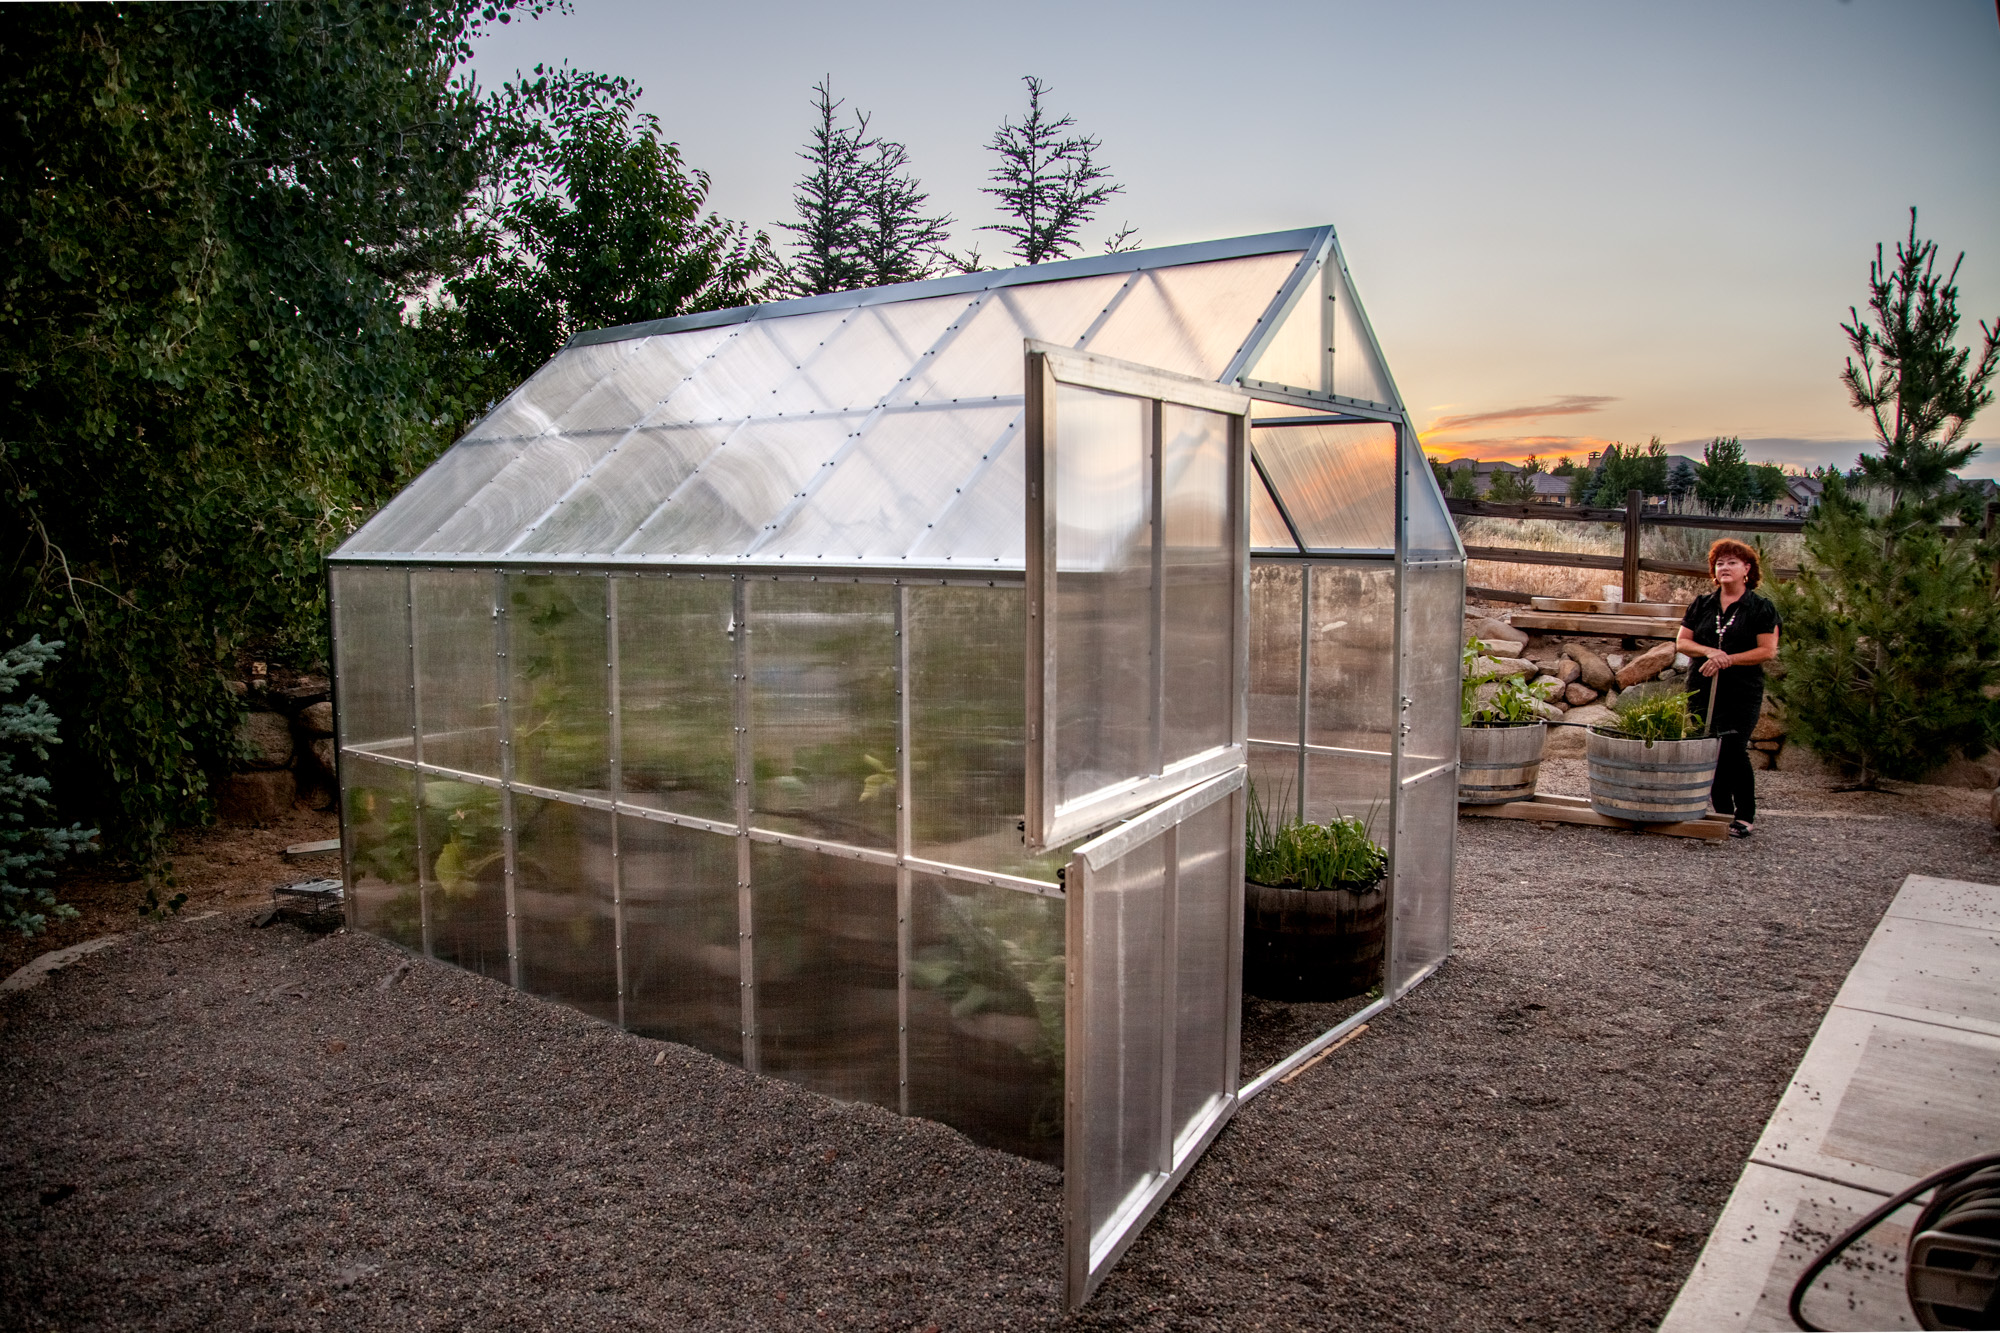 MODULAR BACKYARD GREENHOUSE